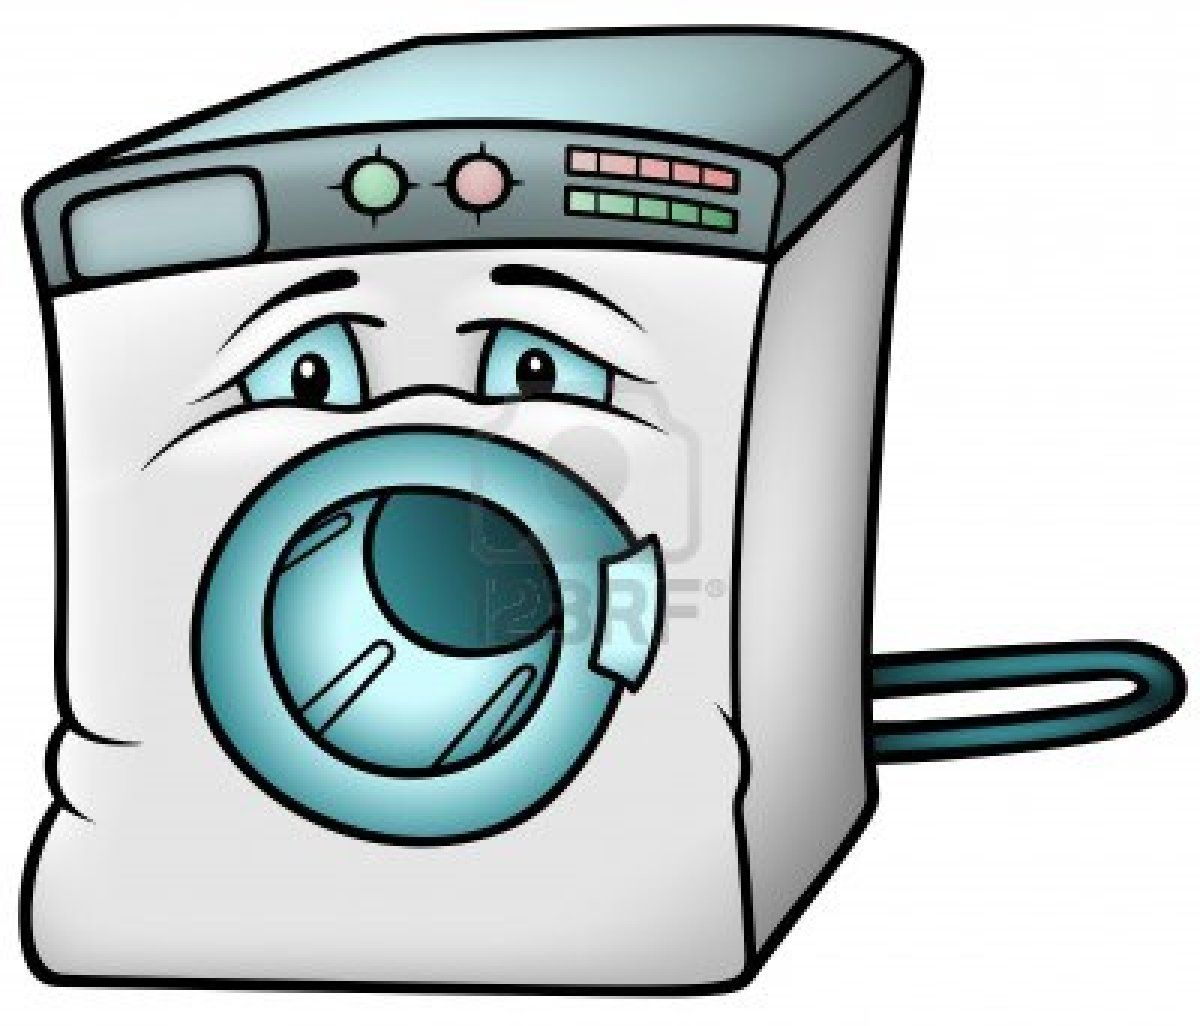 Washing Machine Colored Cartoon Illustration Cartoon Illustration Cartoon Illustration